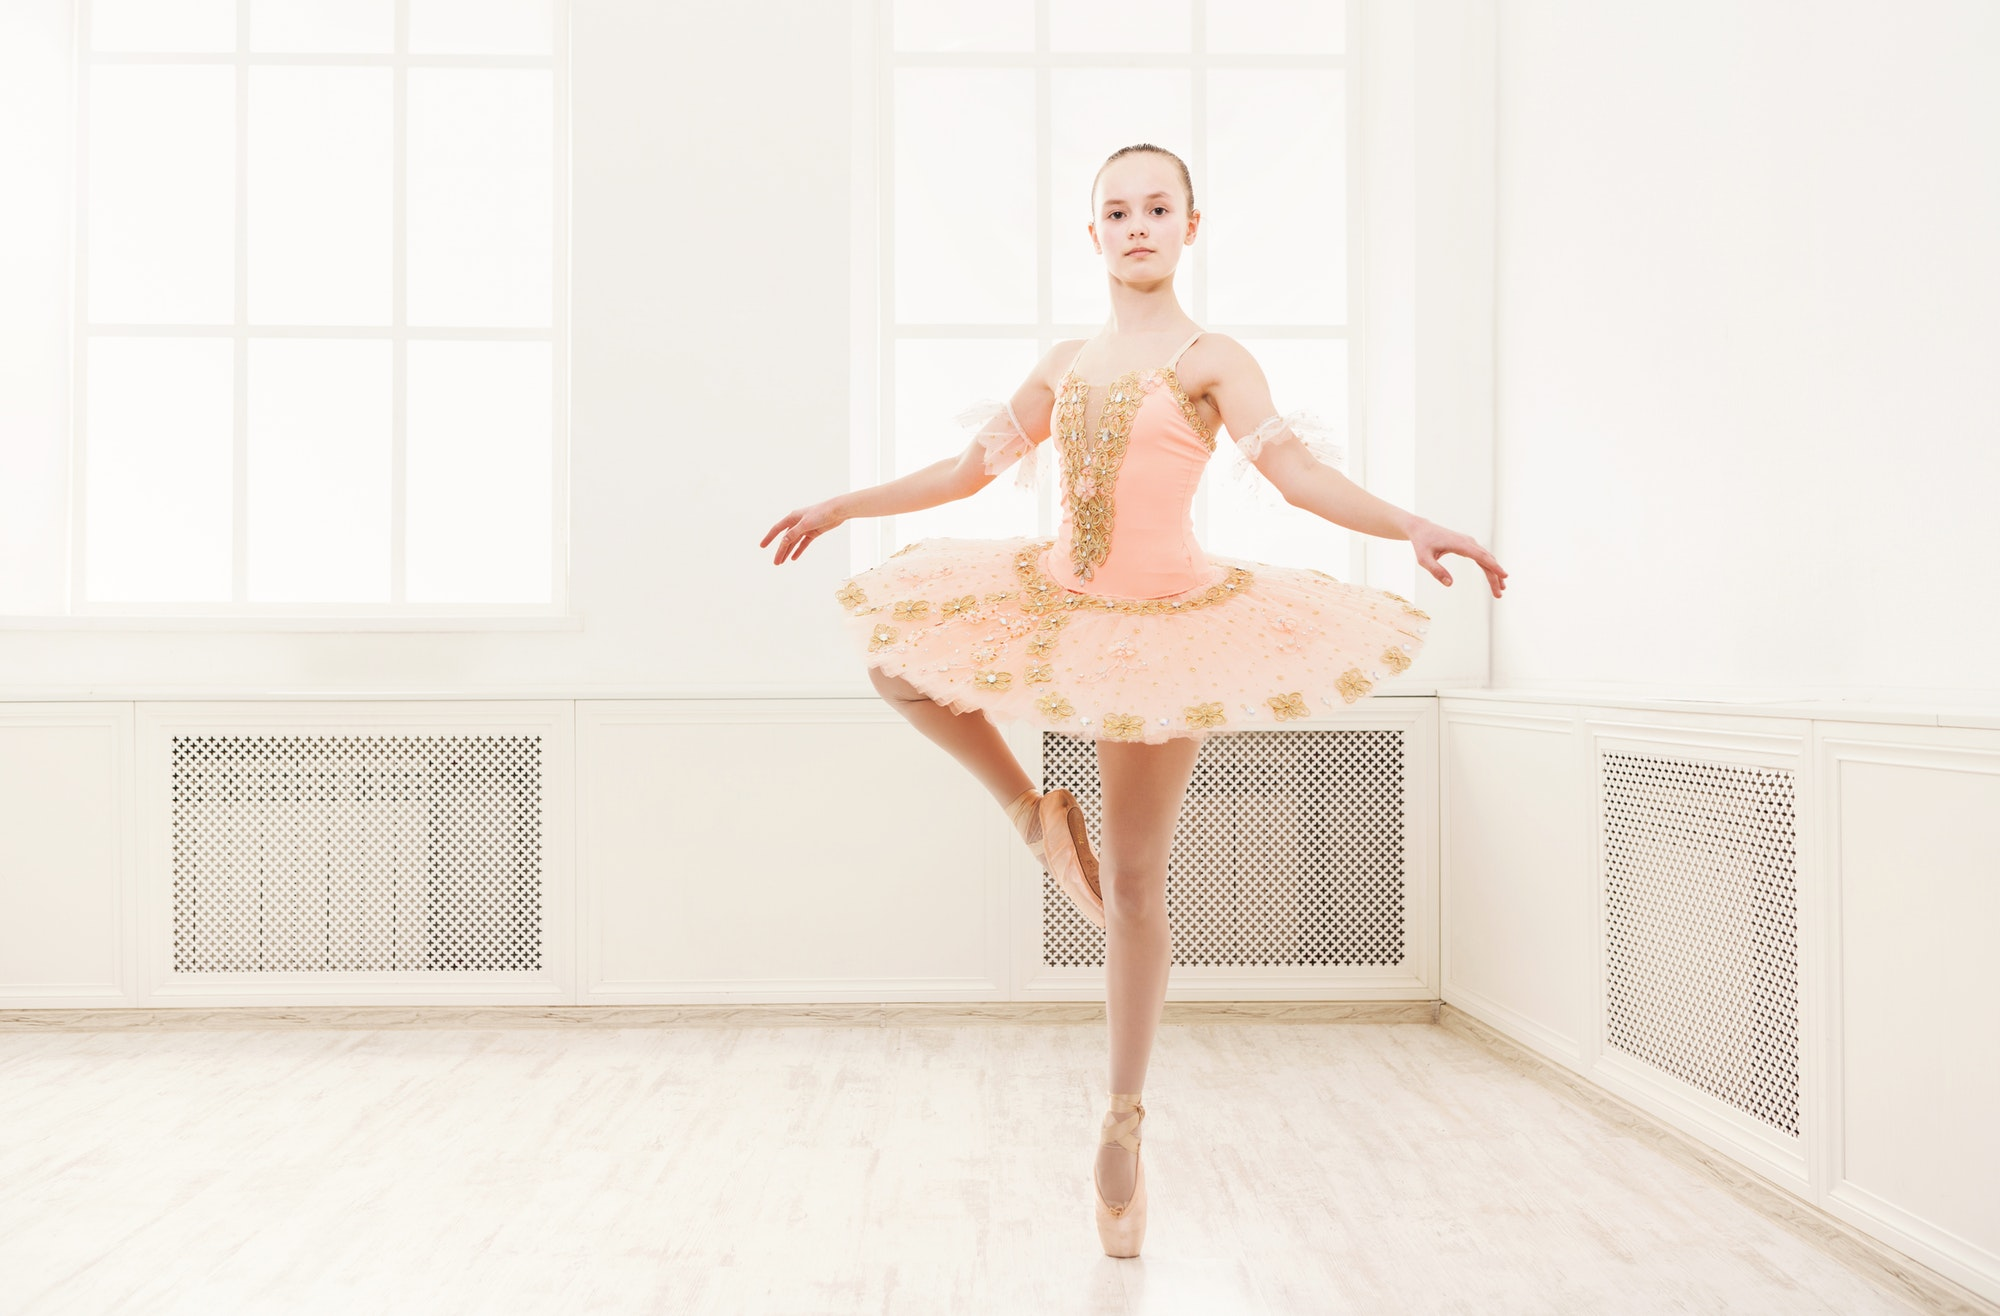 Ballet student exercising in ballet costume